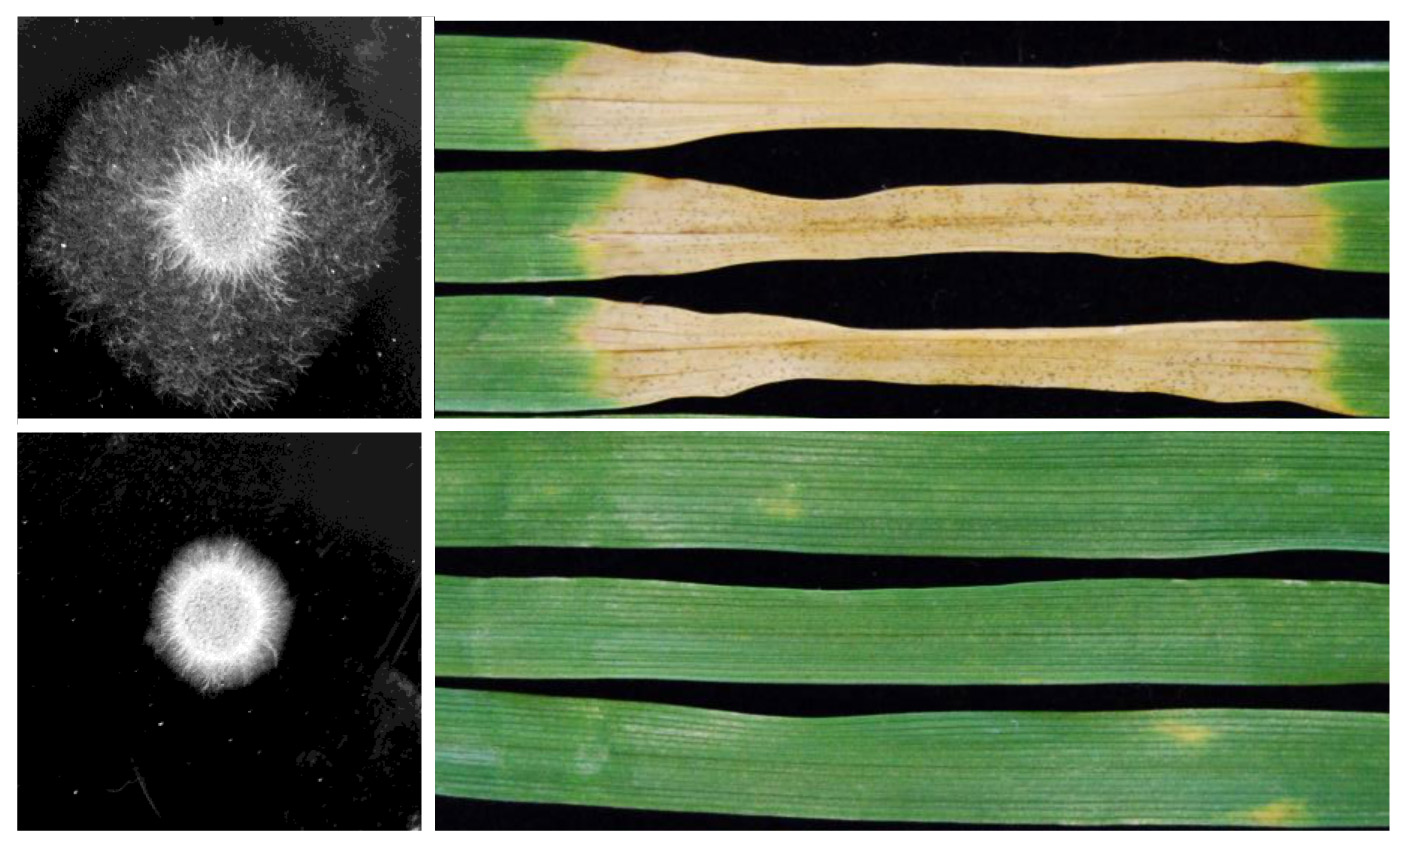 Septoria hyphae and leaf blotch in wheat - credit Rothamsted Research